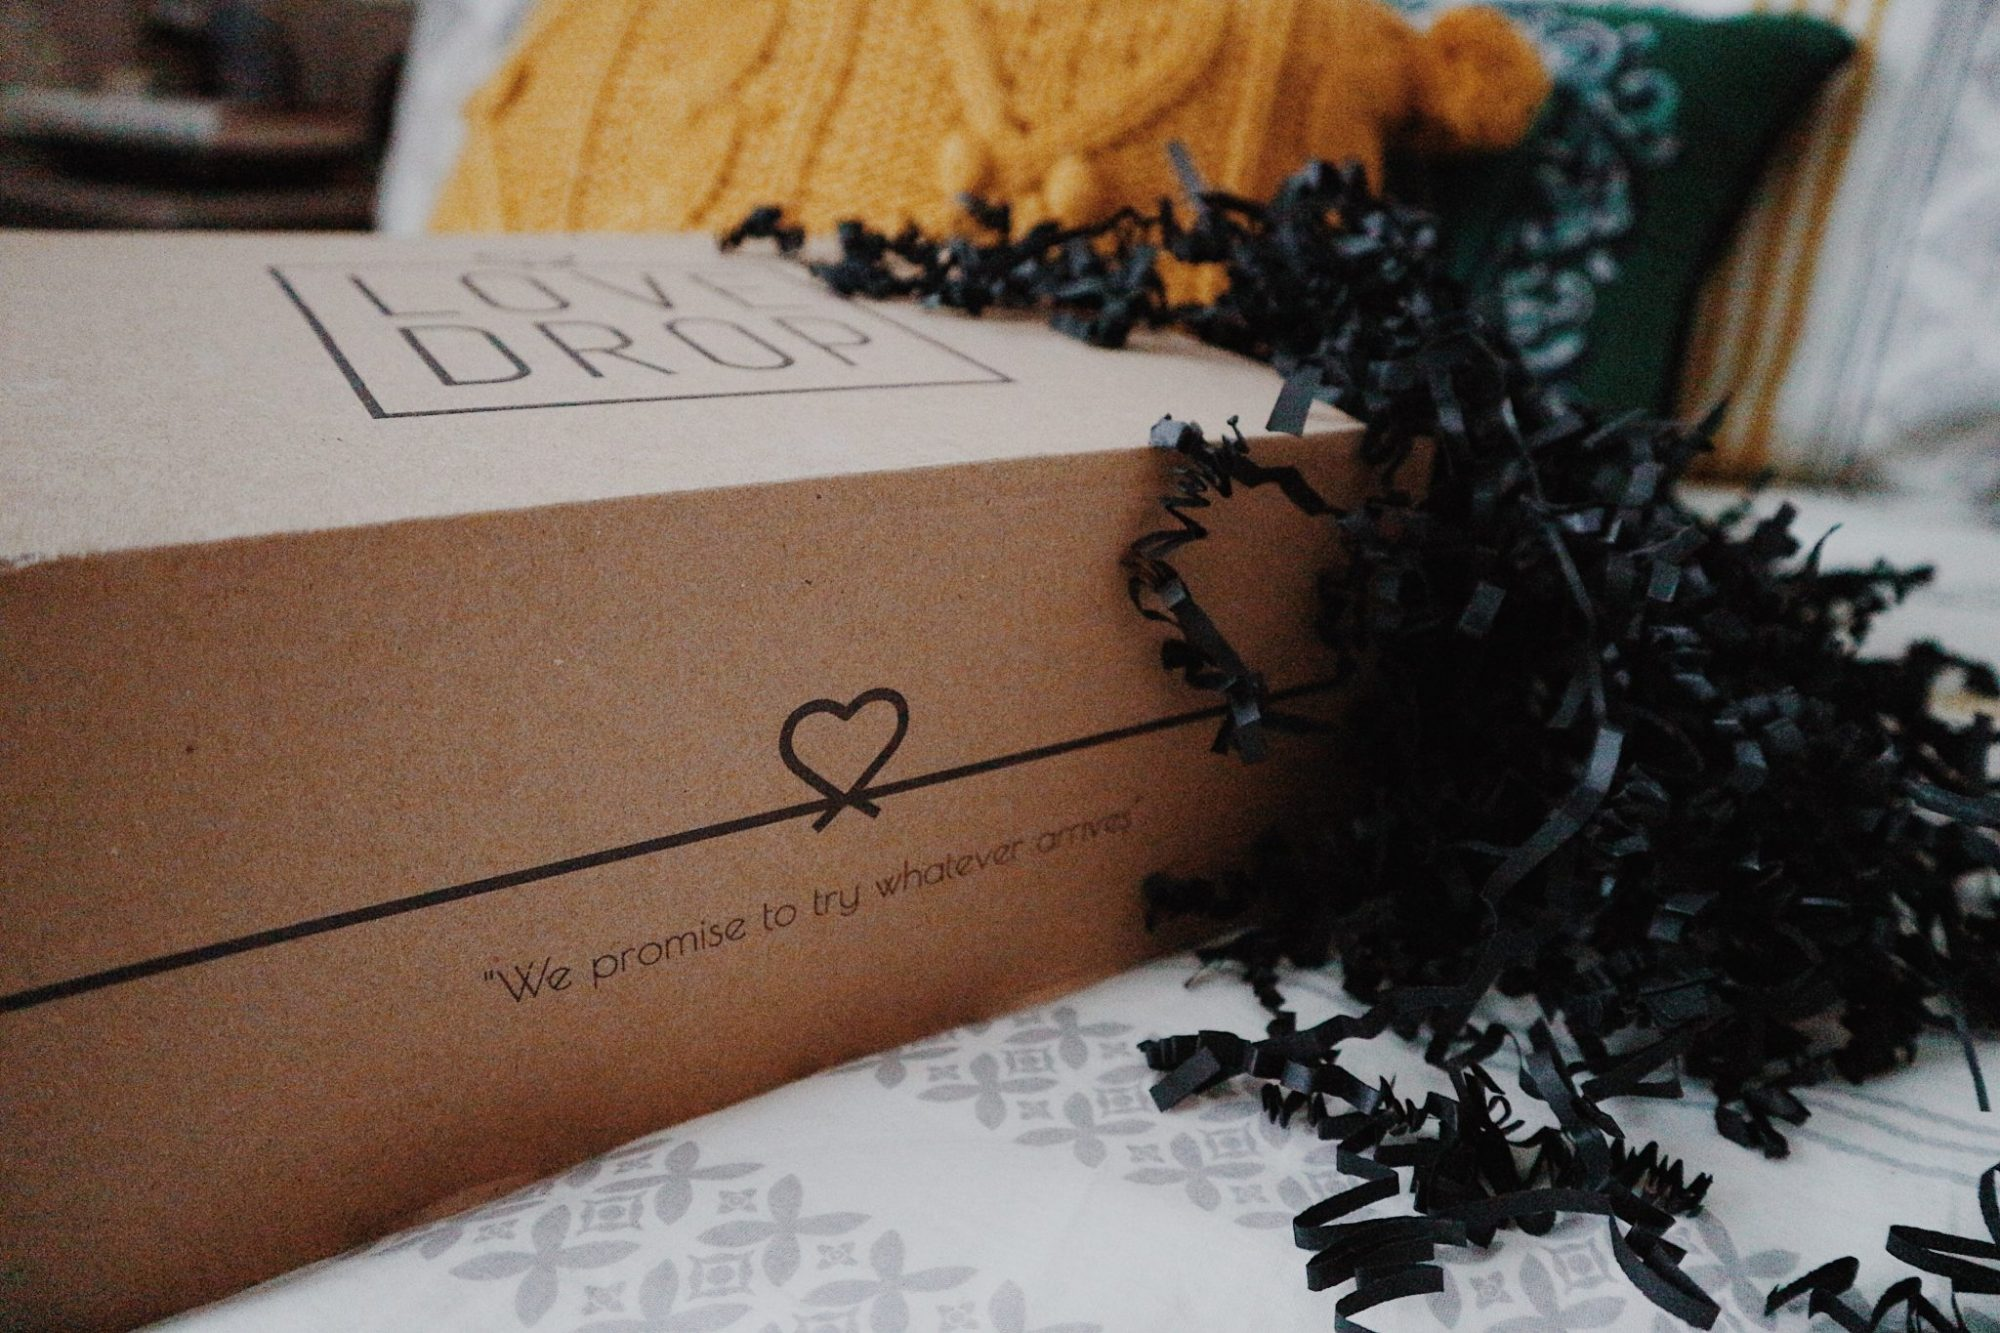 Reviewing The LoveDrop Date Night Subscription Box